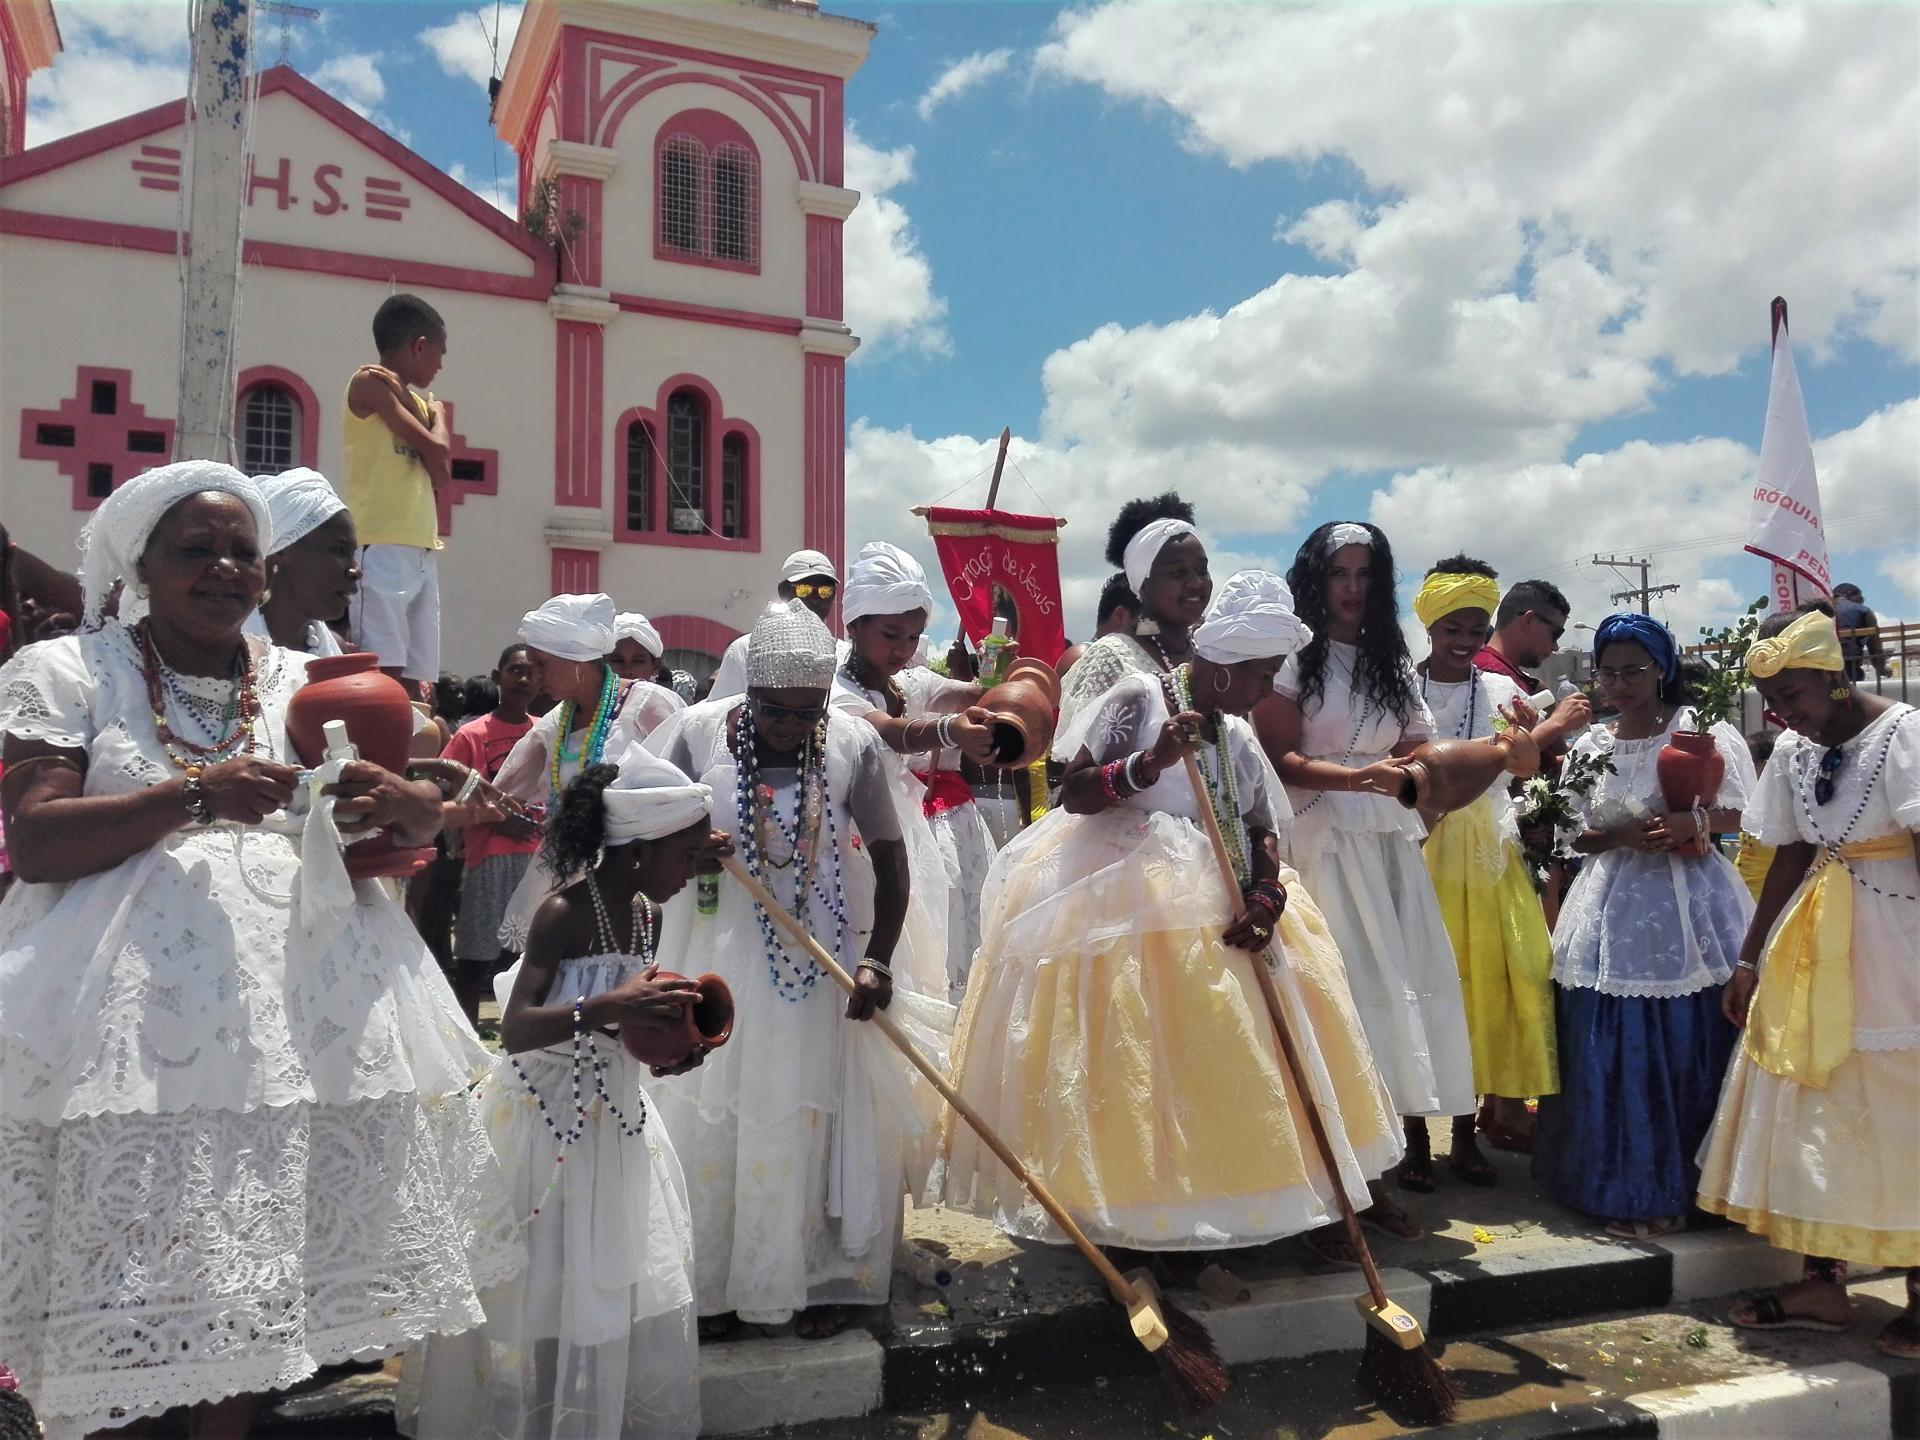 Baianas sweeping in front of a church